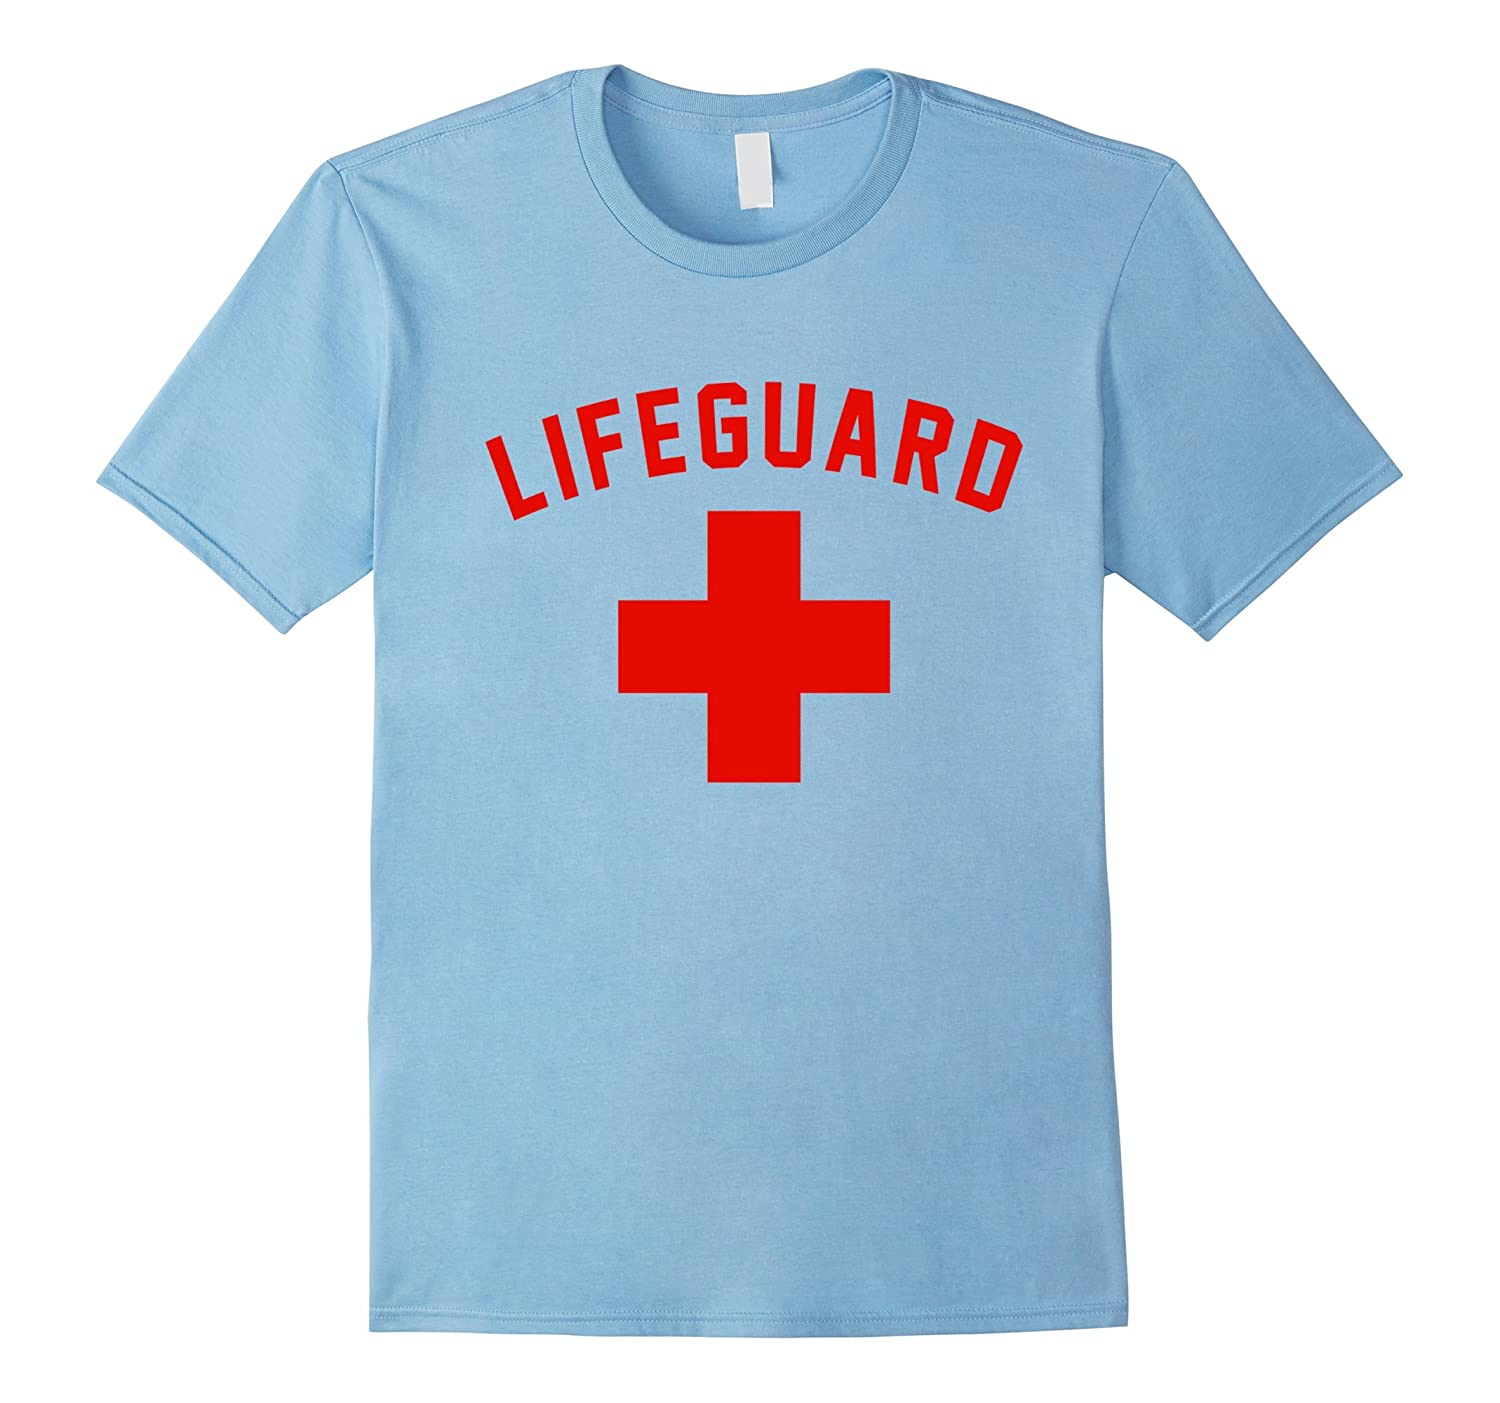 Lifeguard Red & White Certified Swimming Pool Cross T Shirt-FL